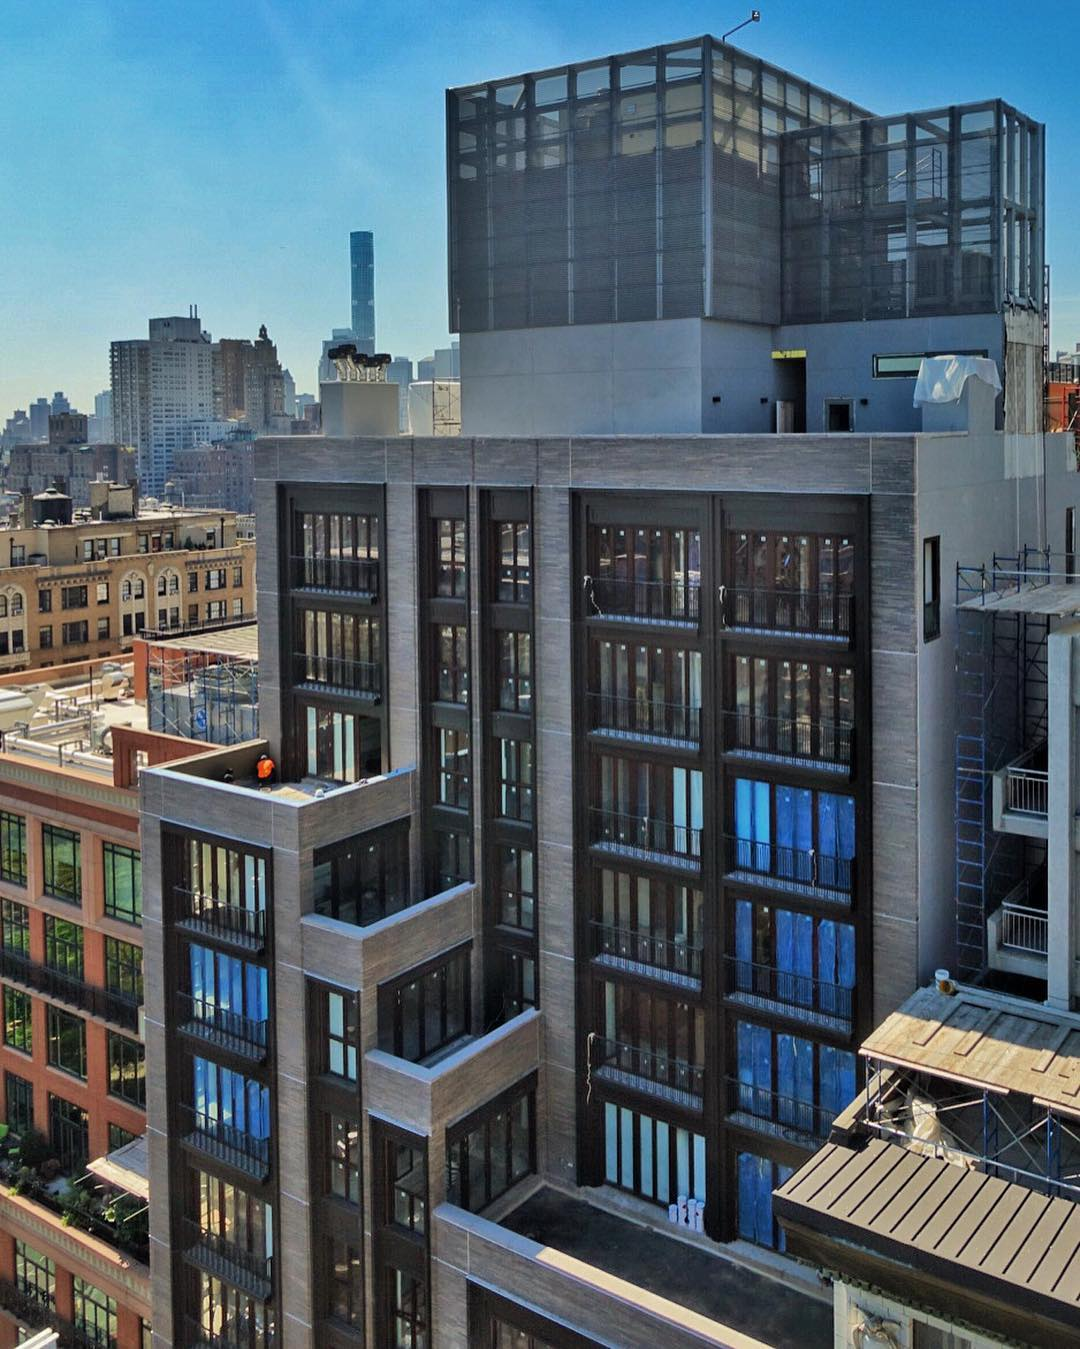 210 West 77th Street as seen from 221 West 77th Street. Photo by David Palmieri via Vertical_Gotham on YIMBY Forums